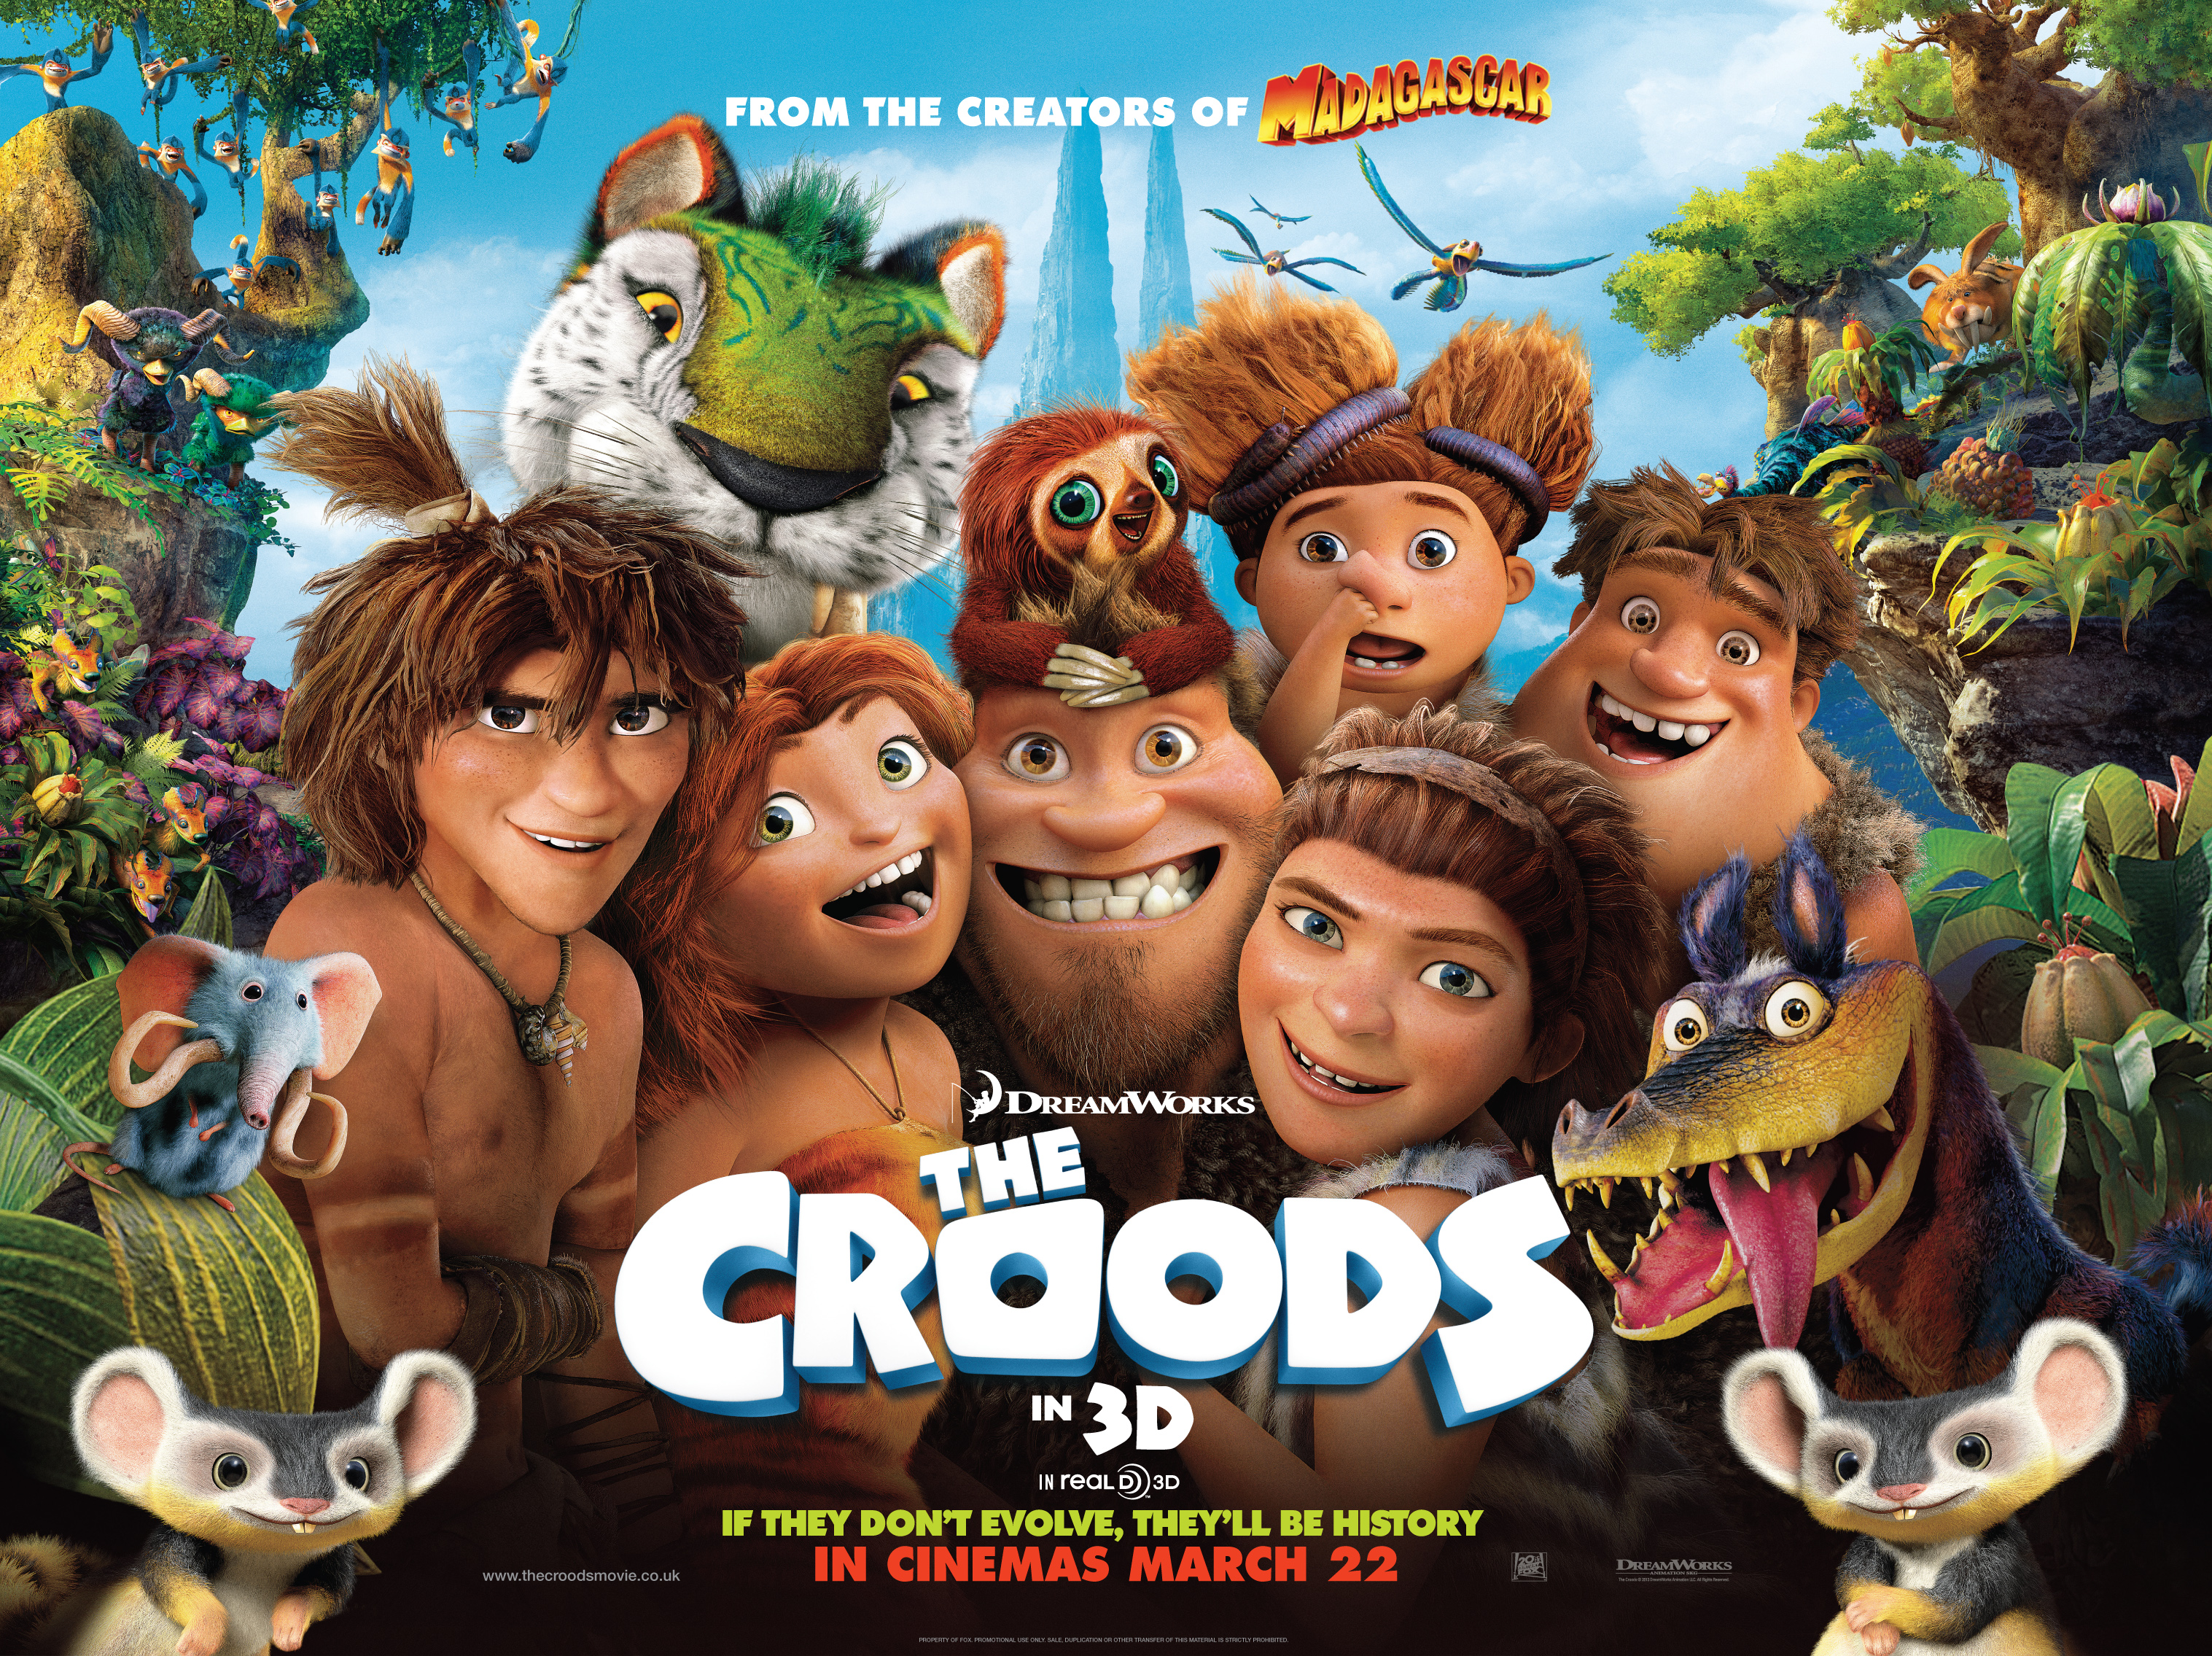 The Croods: Meet the Characters of Dreamworks PreHistoric